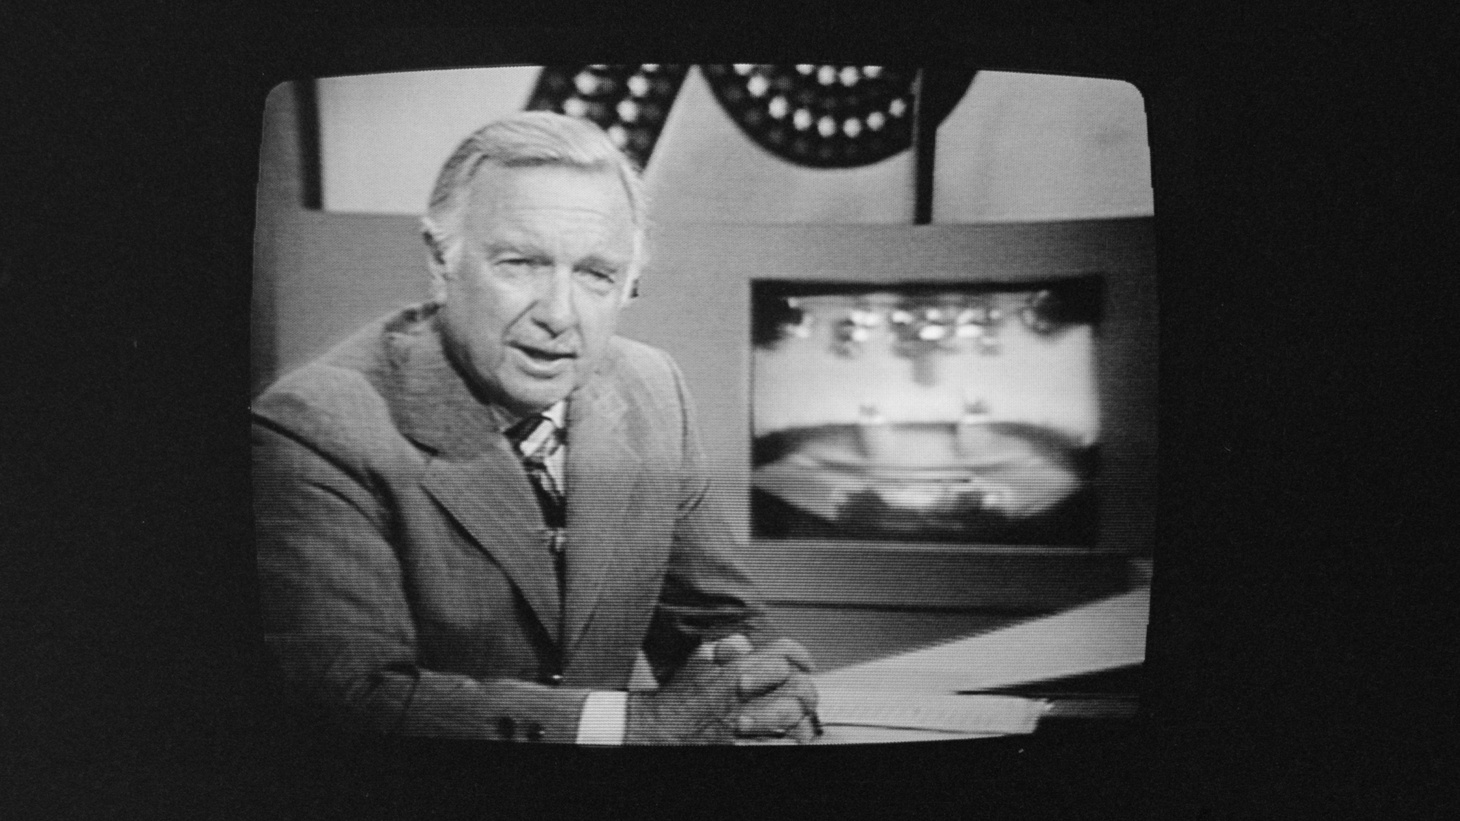 Walter Cronkite on television during Ford-Carter debate, 1976.